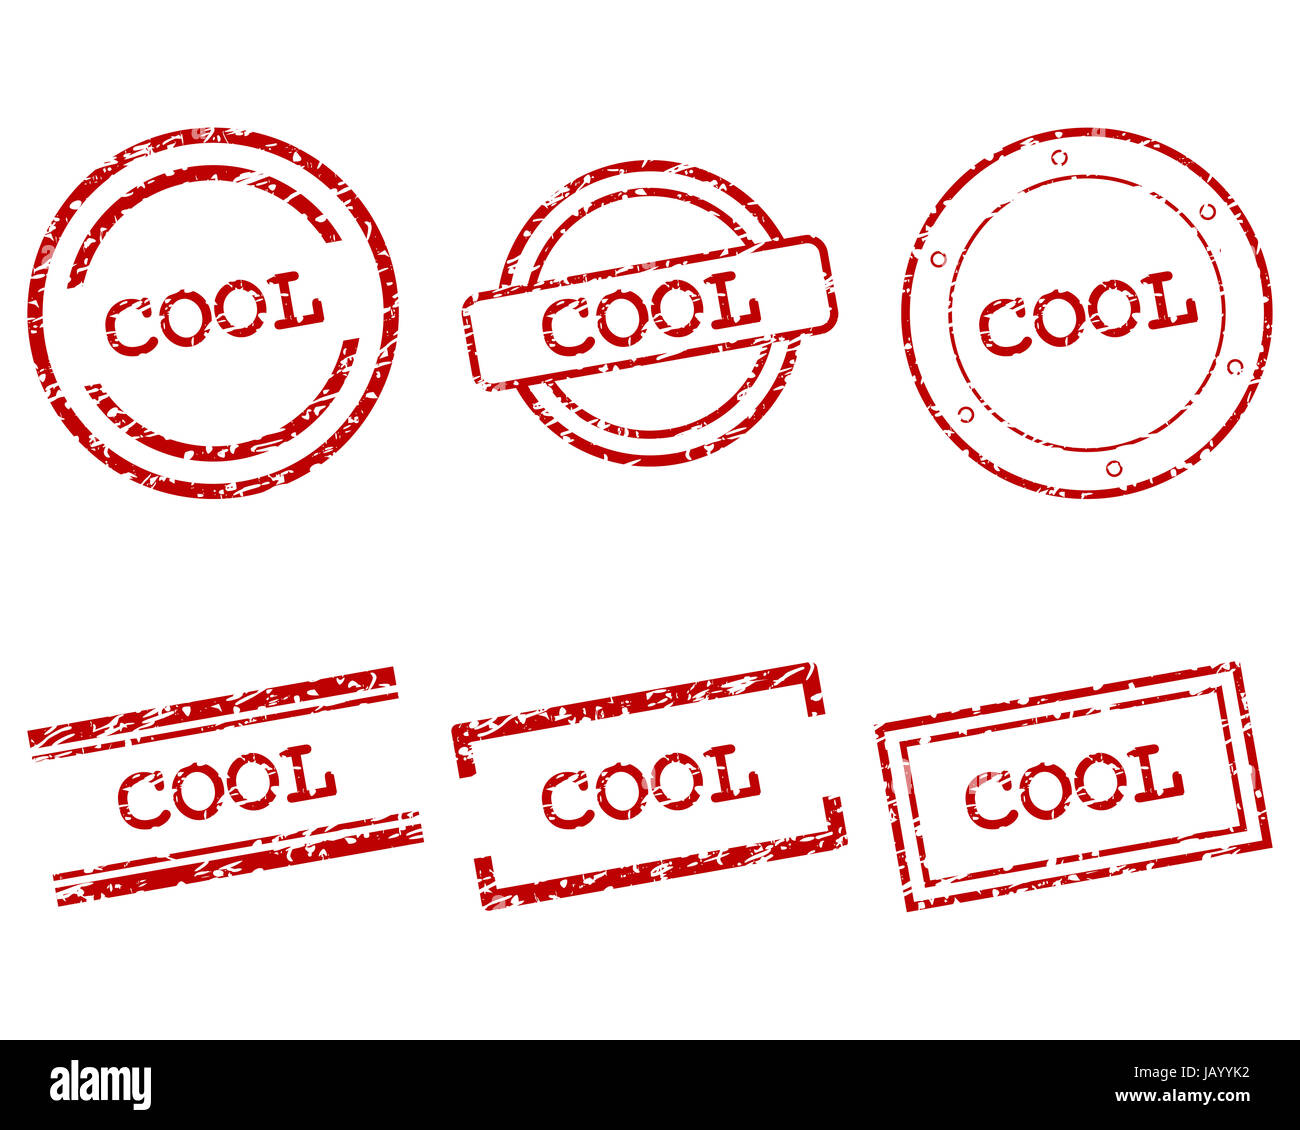 Cool Stempel - Stock Image